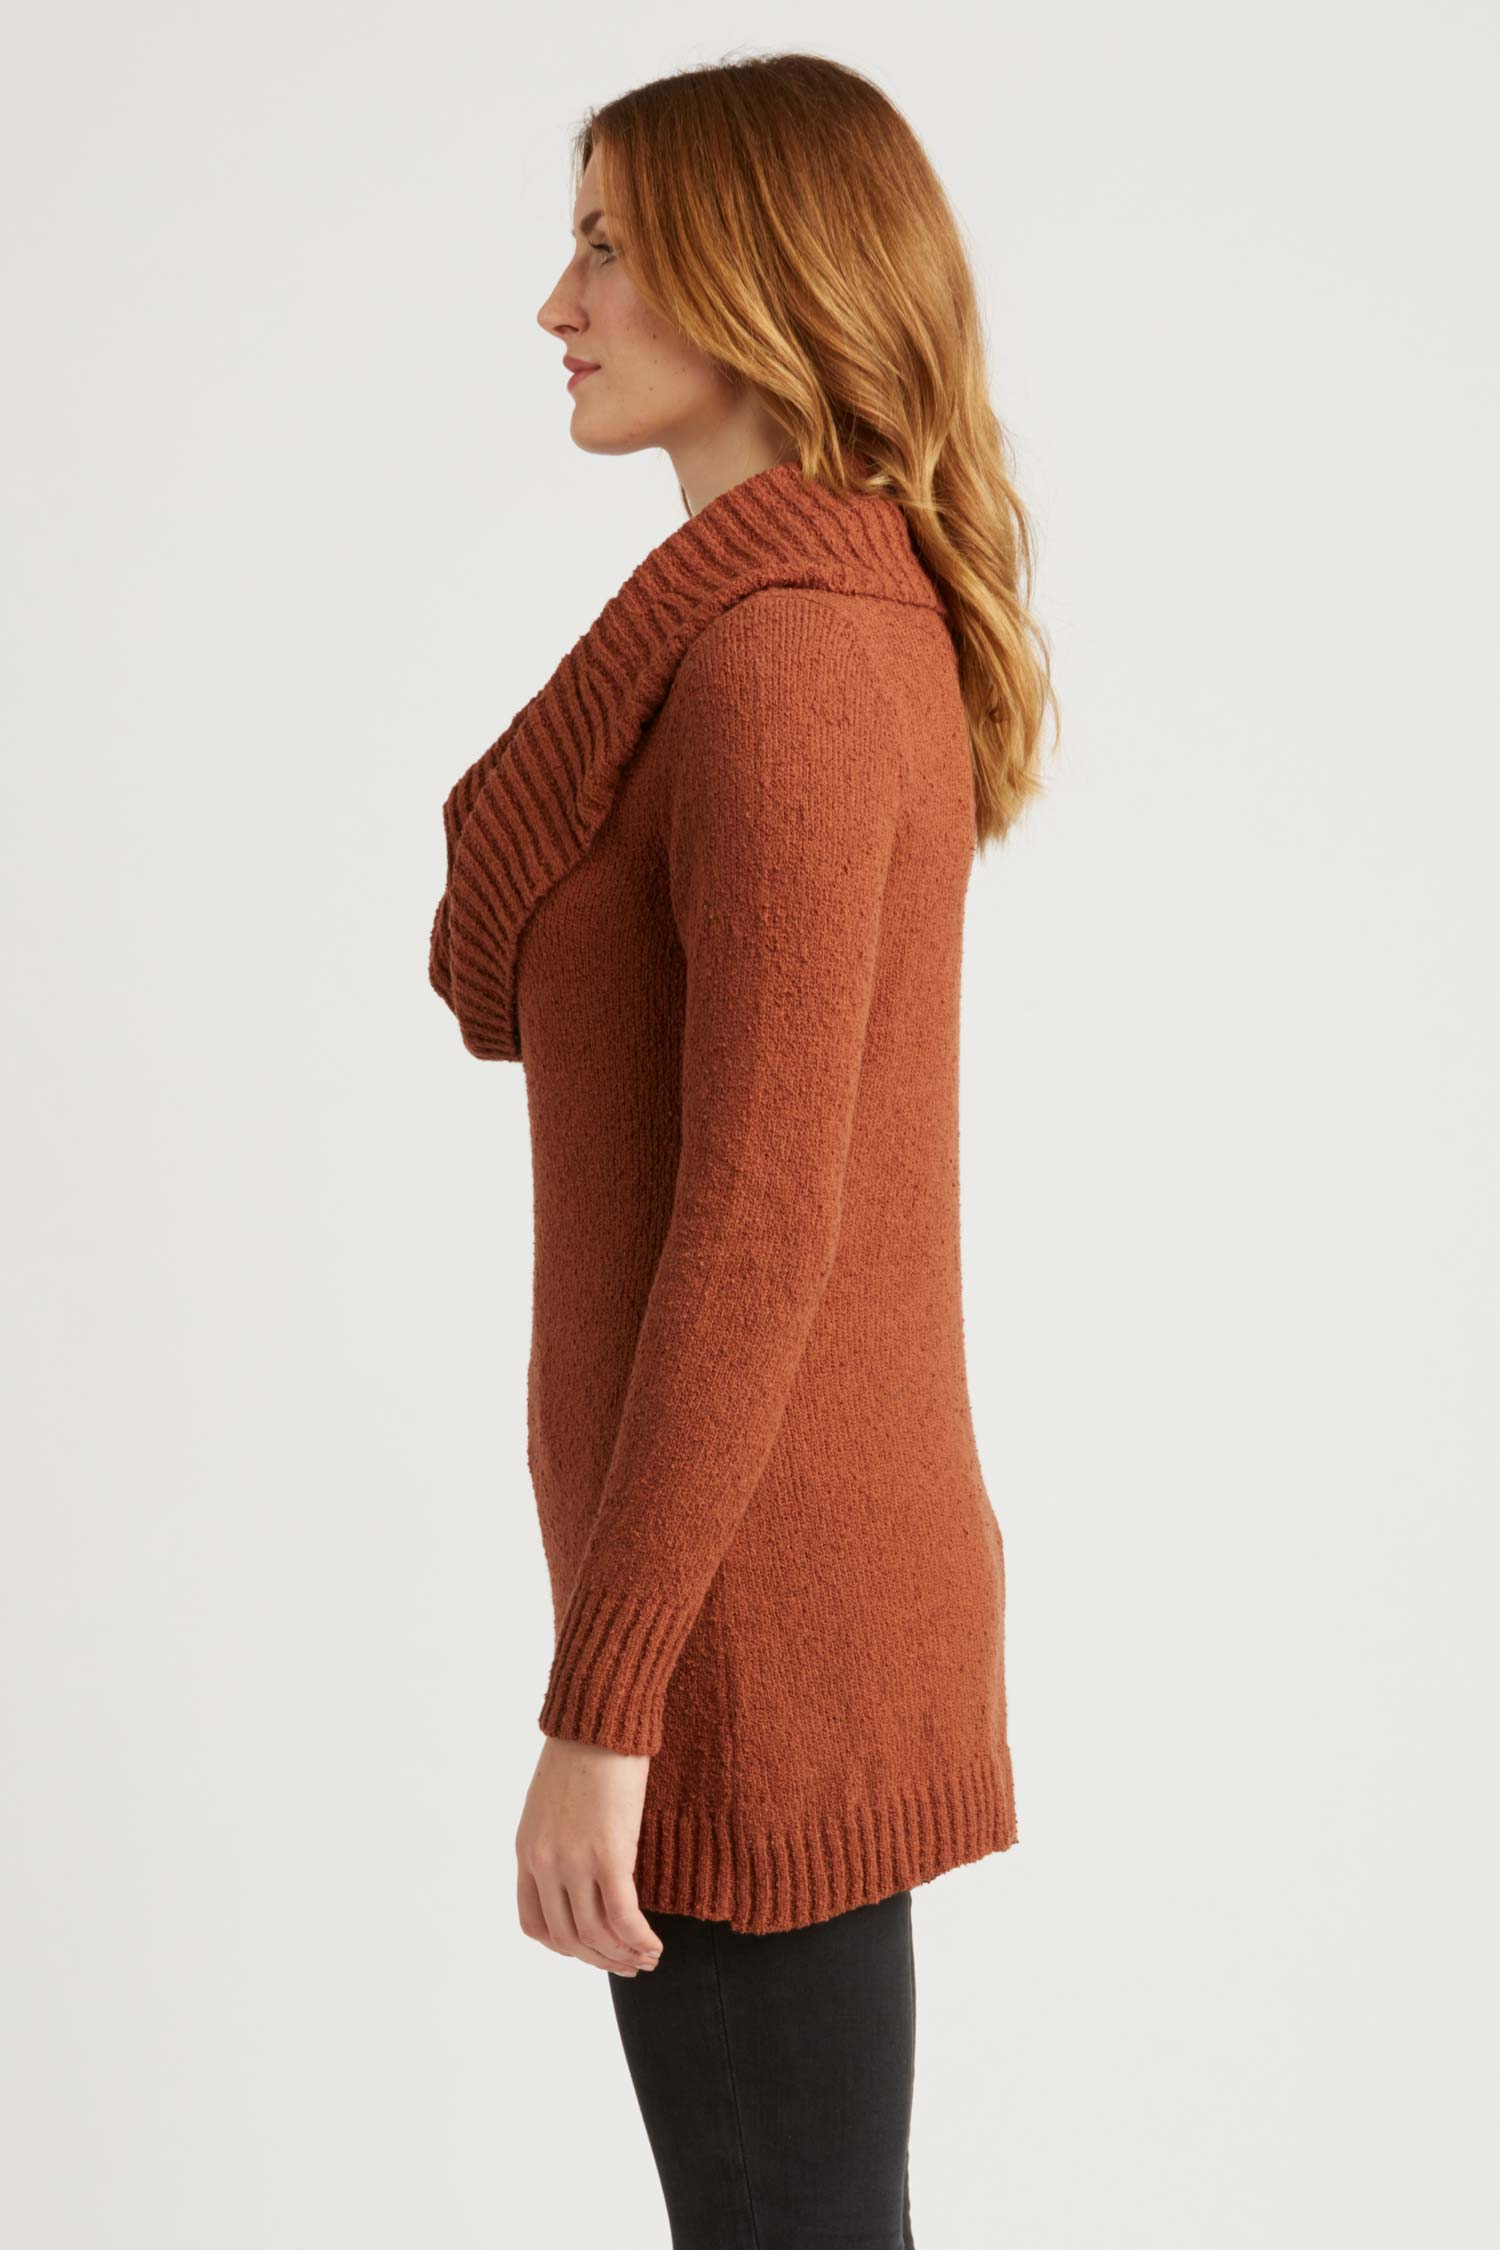 Womens Sweater in Organic Cotton Boucle | Fair Trade